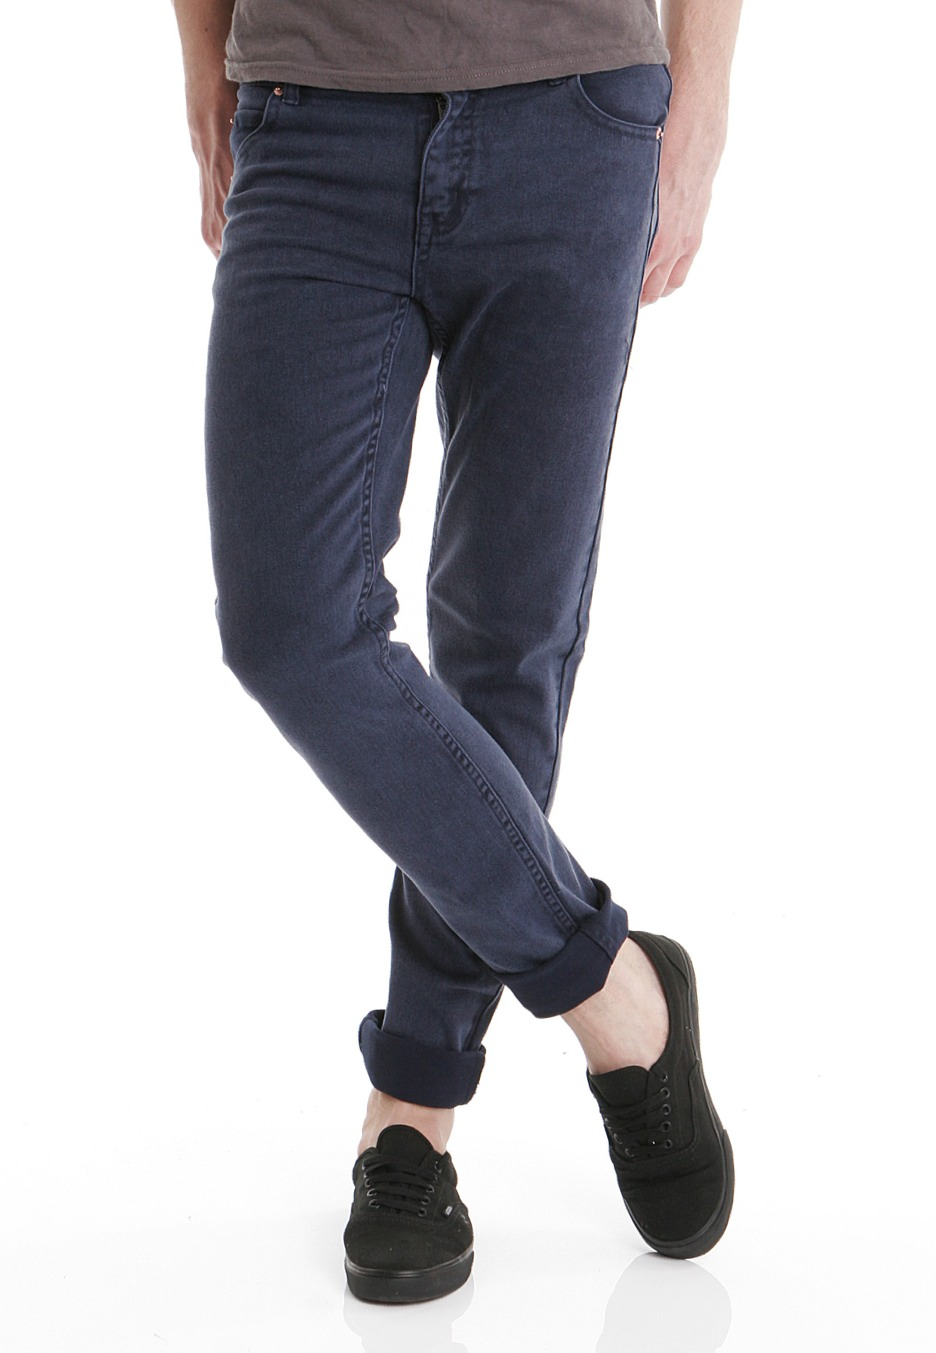 cheap monday tight navy nice jeans uk. Black Bedroom Furniture Sets. Home Design Ideas